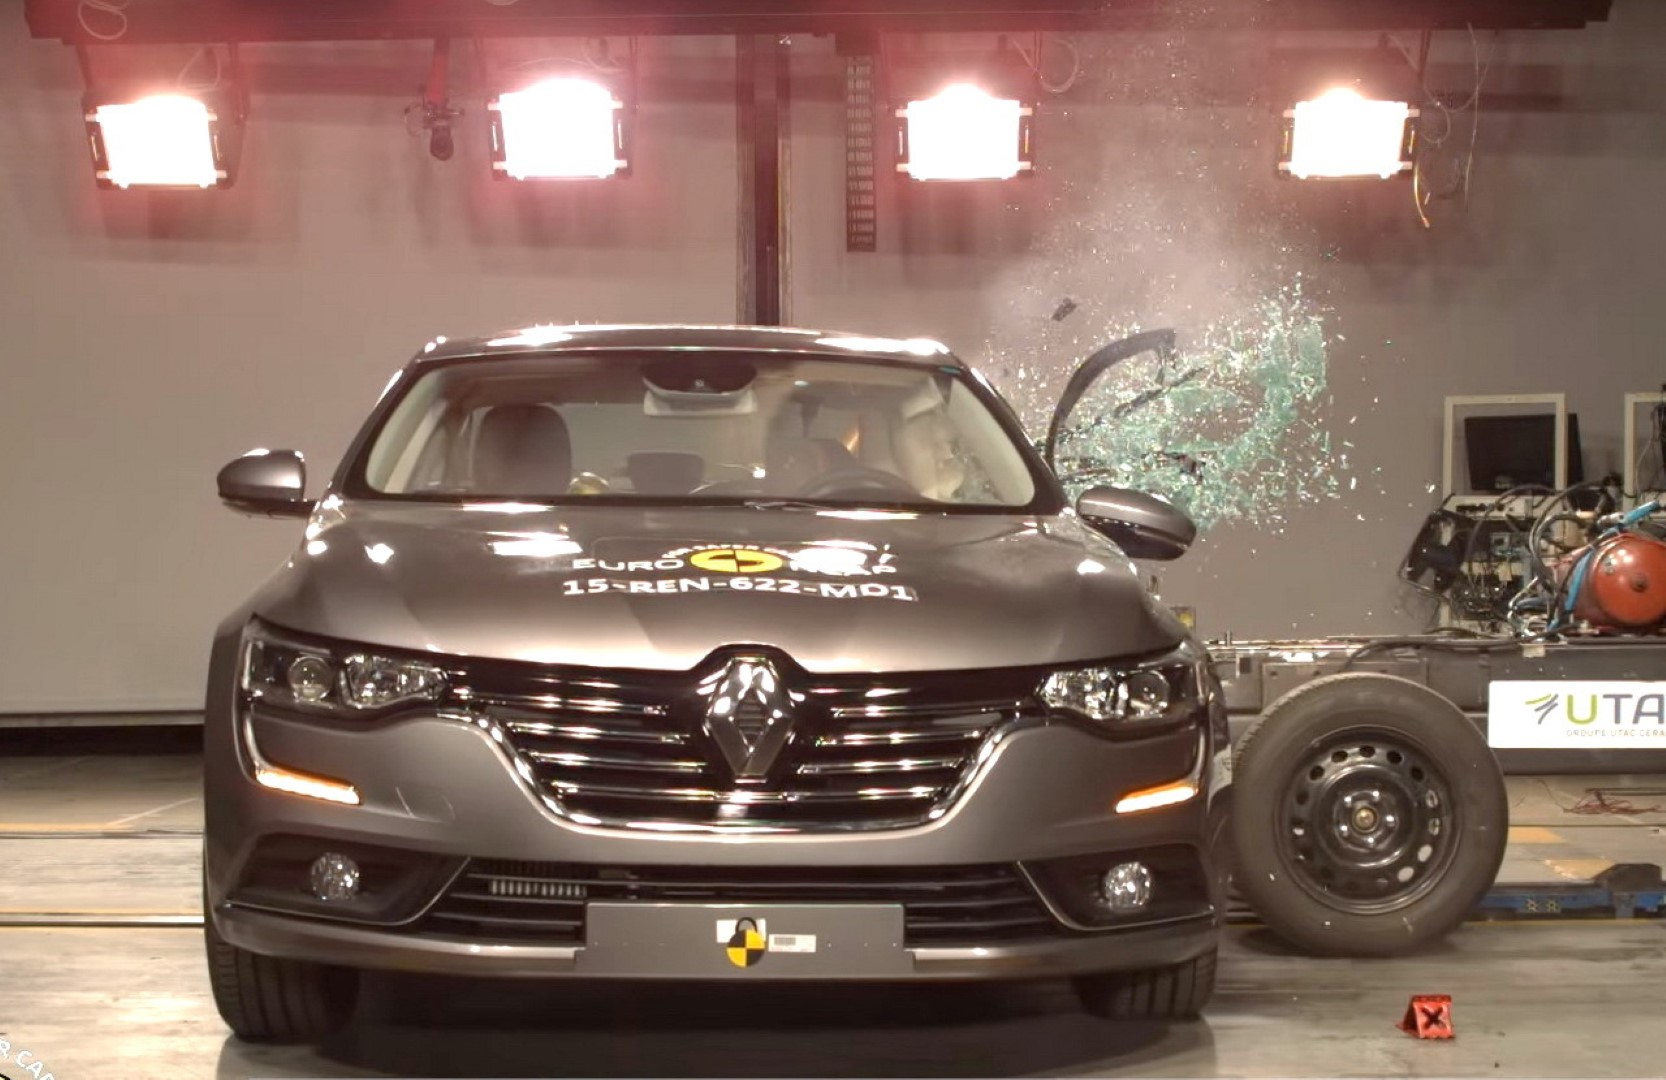 renault-talisman-crash-test-euroncap-2015-2 (Large)